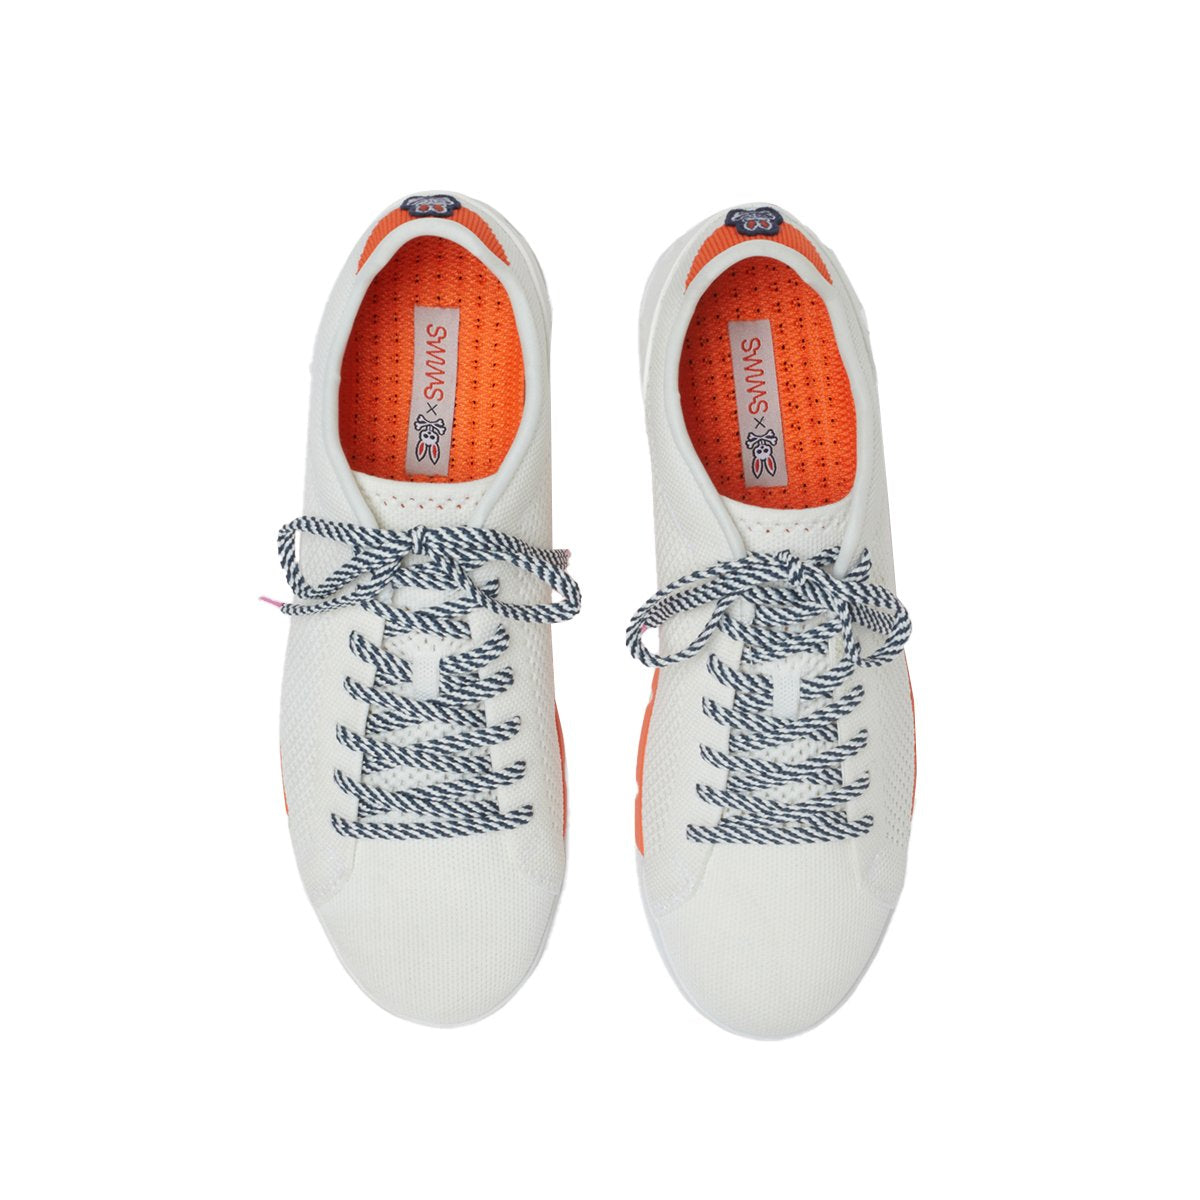 Psycho Bunny x SWIMS Breeze Knit Tennis - background::white,variant::white